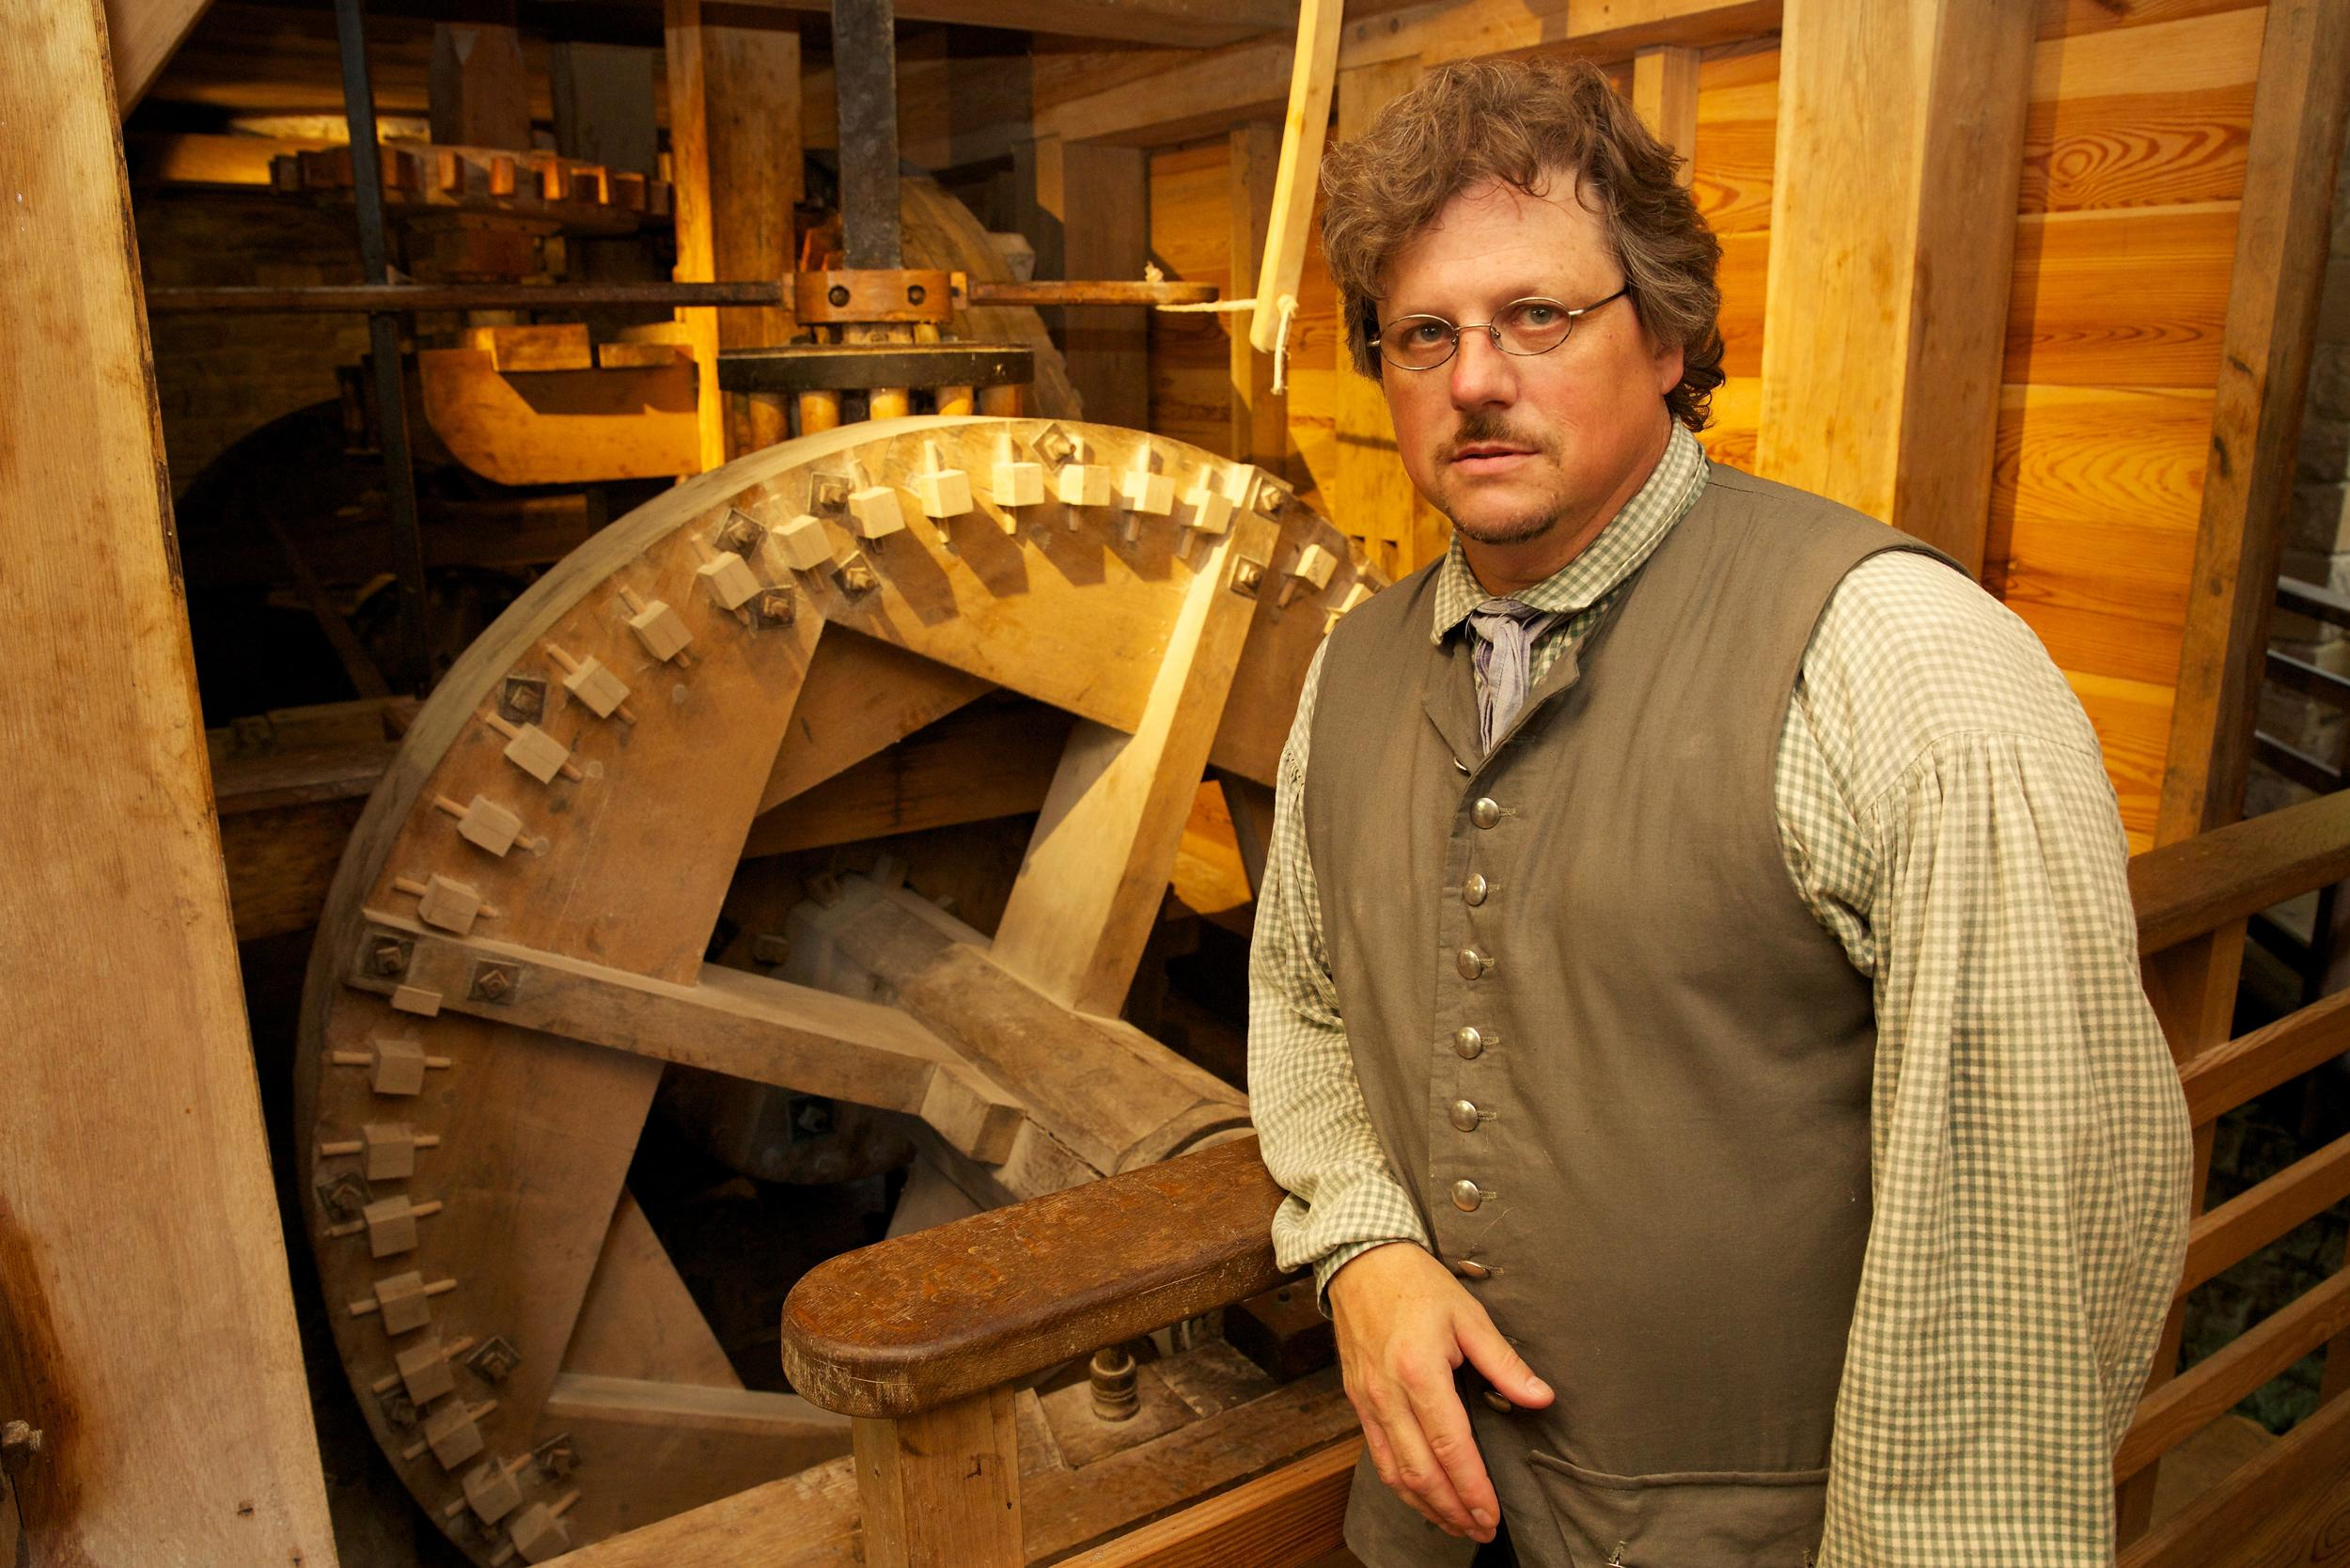 Steve Bashore inside George Washington's reconstructed gristmill.